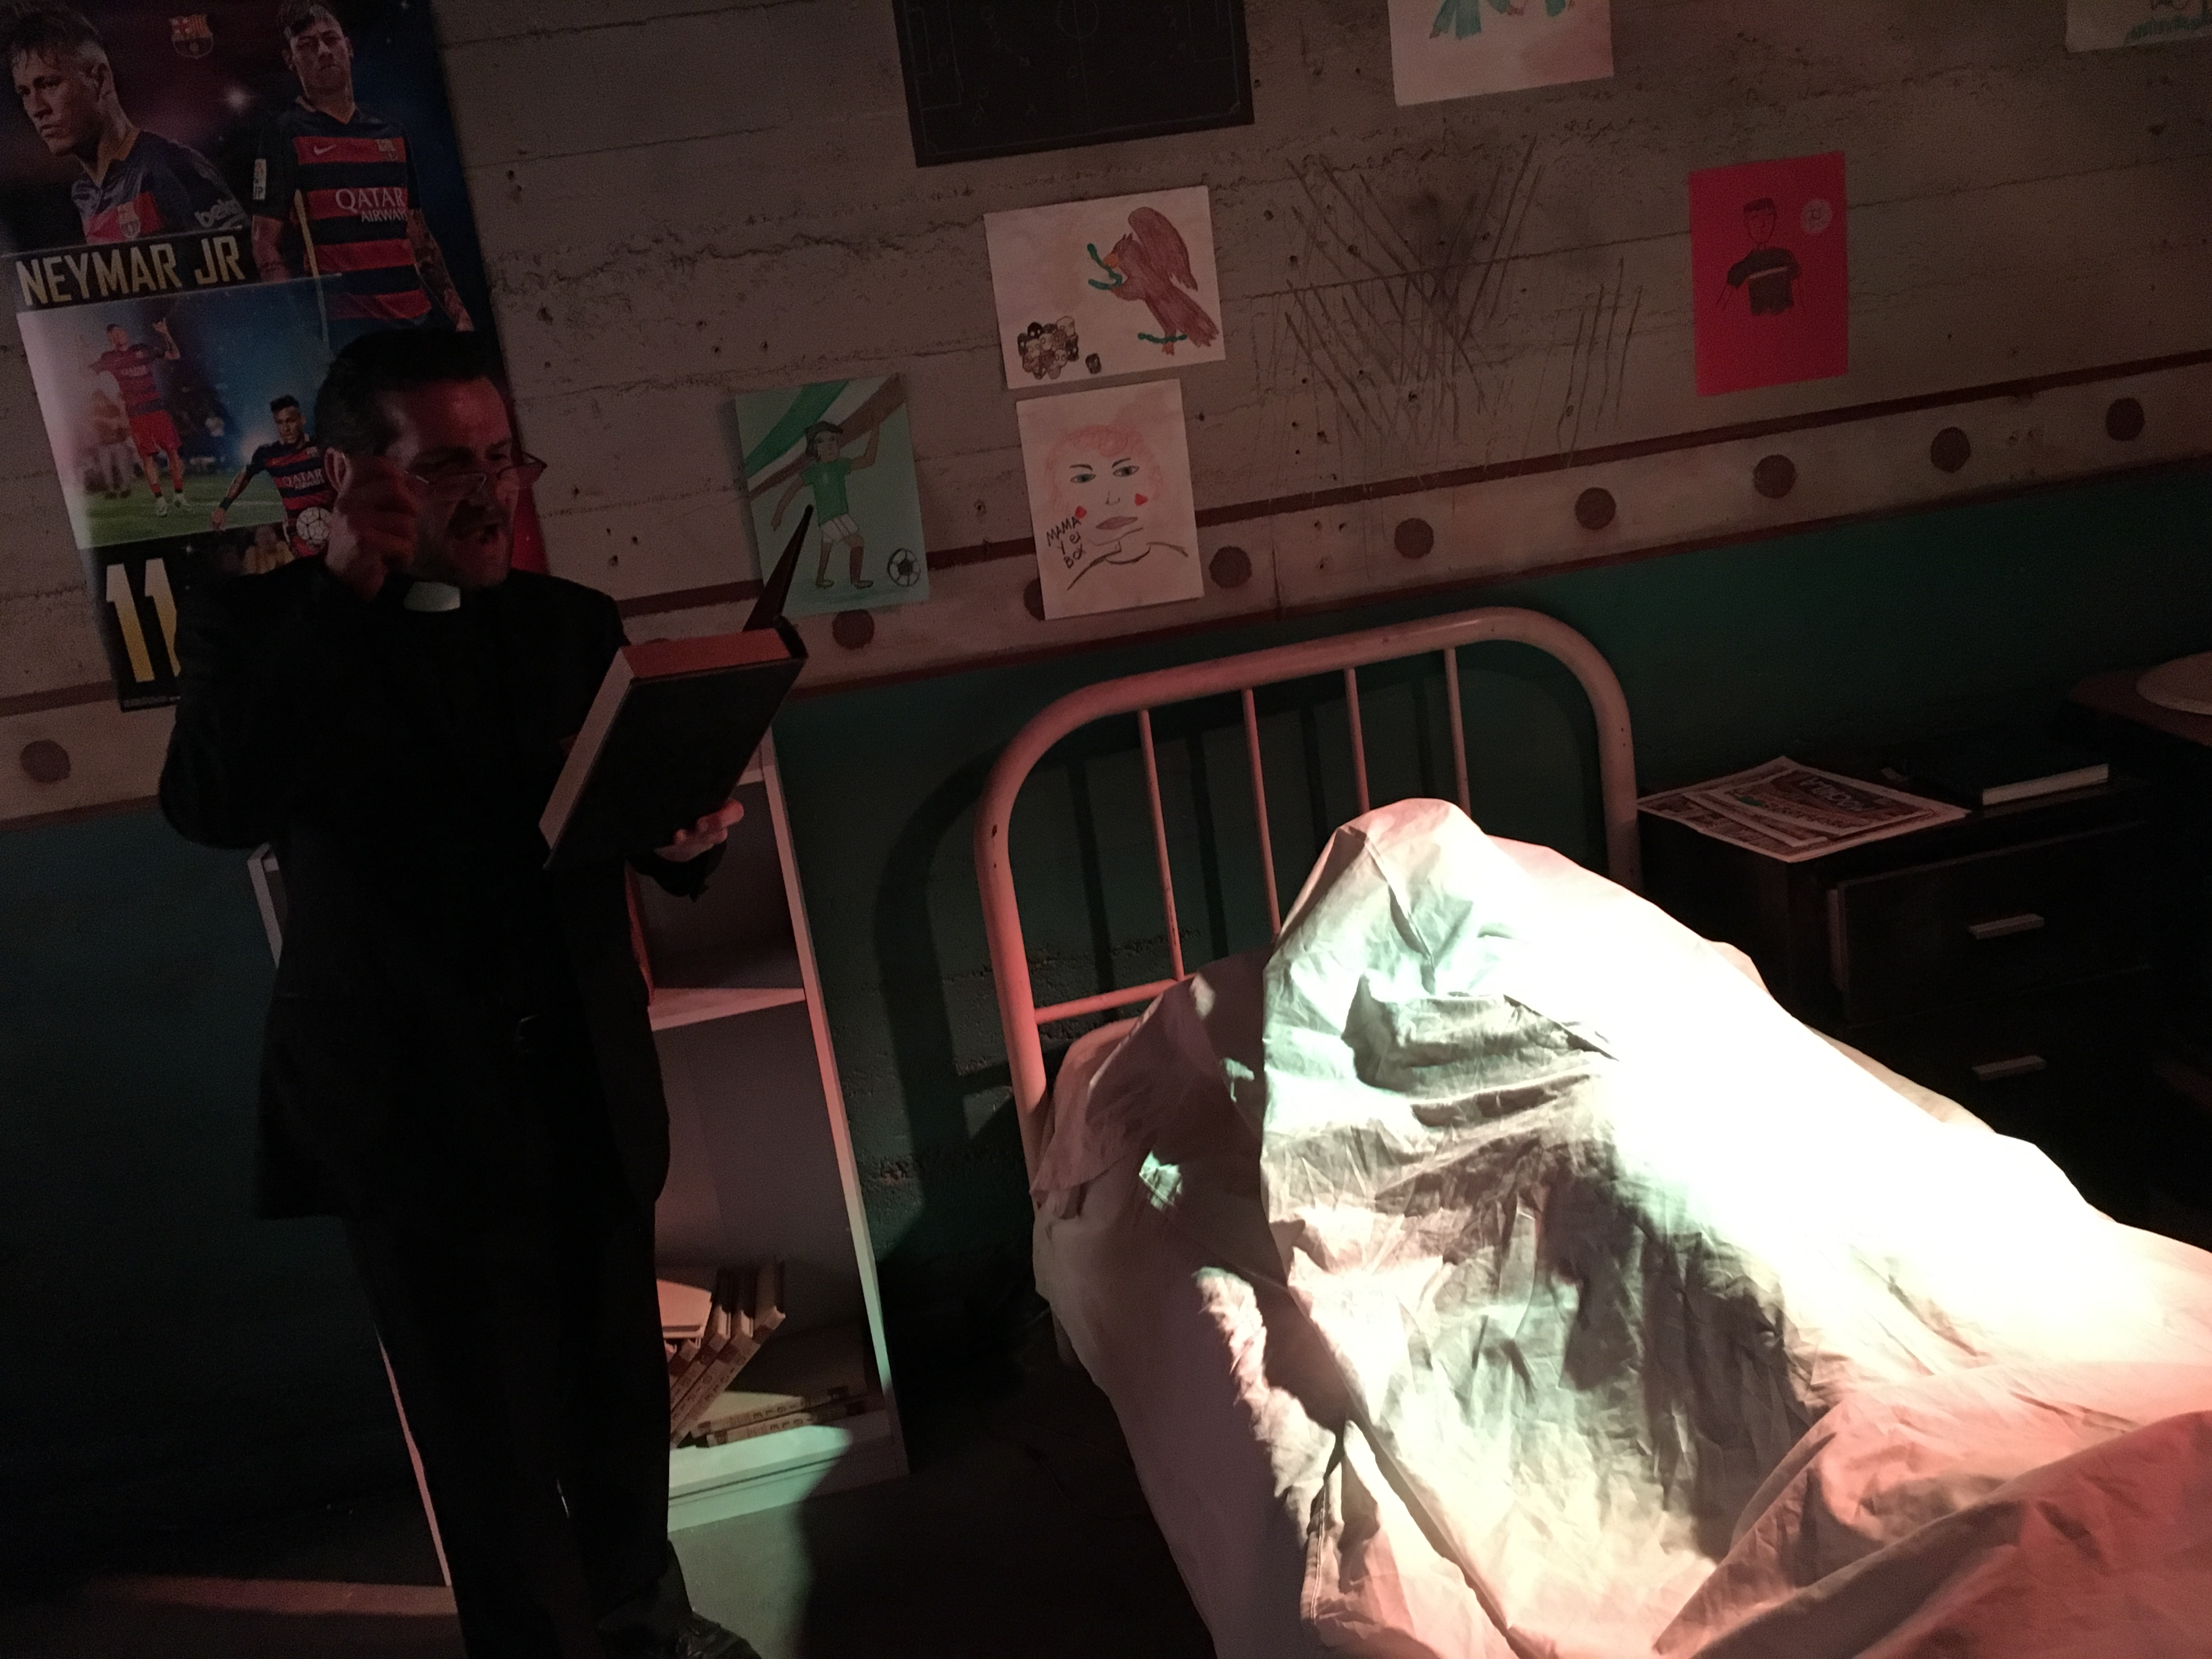 Possess Yourself with The Exorcist Room at Escape Hotel - HorrorBuzz